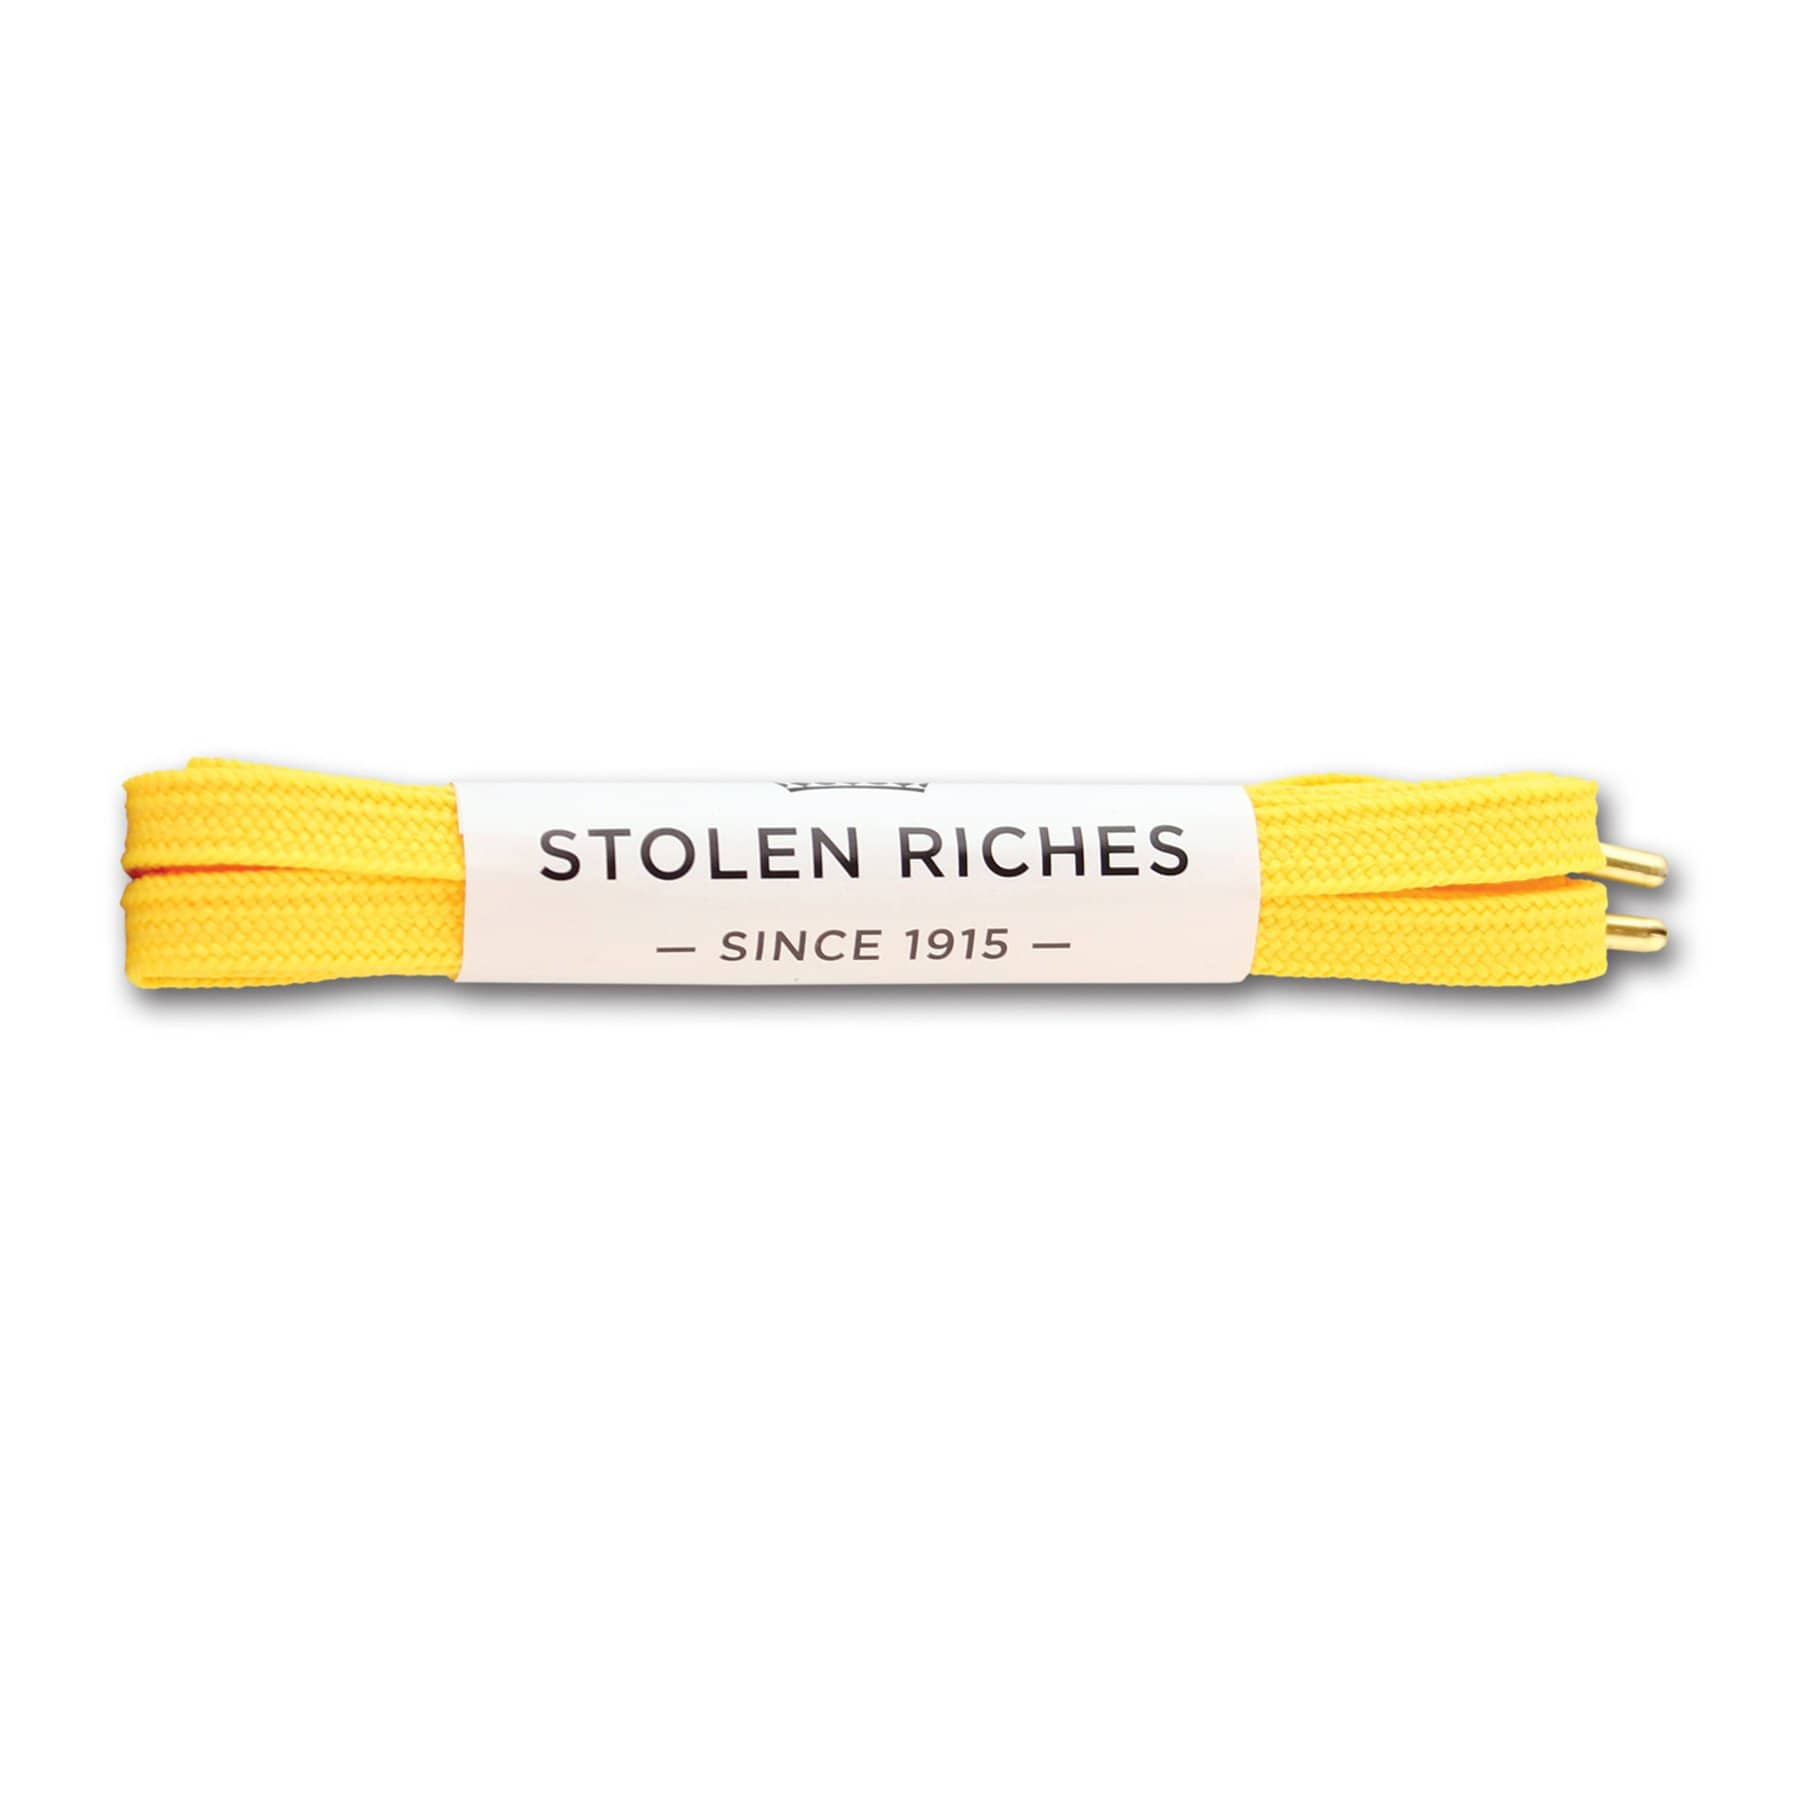 "Huckleberry Yellow (Length: 45""/114cm) - Stolen Riches"